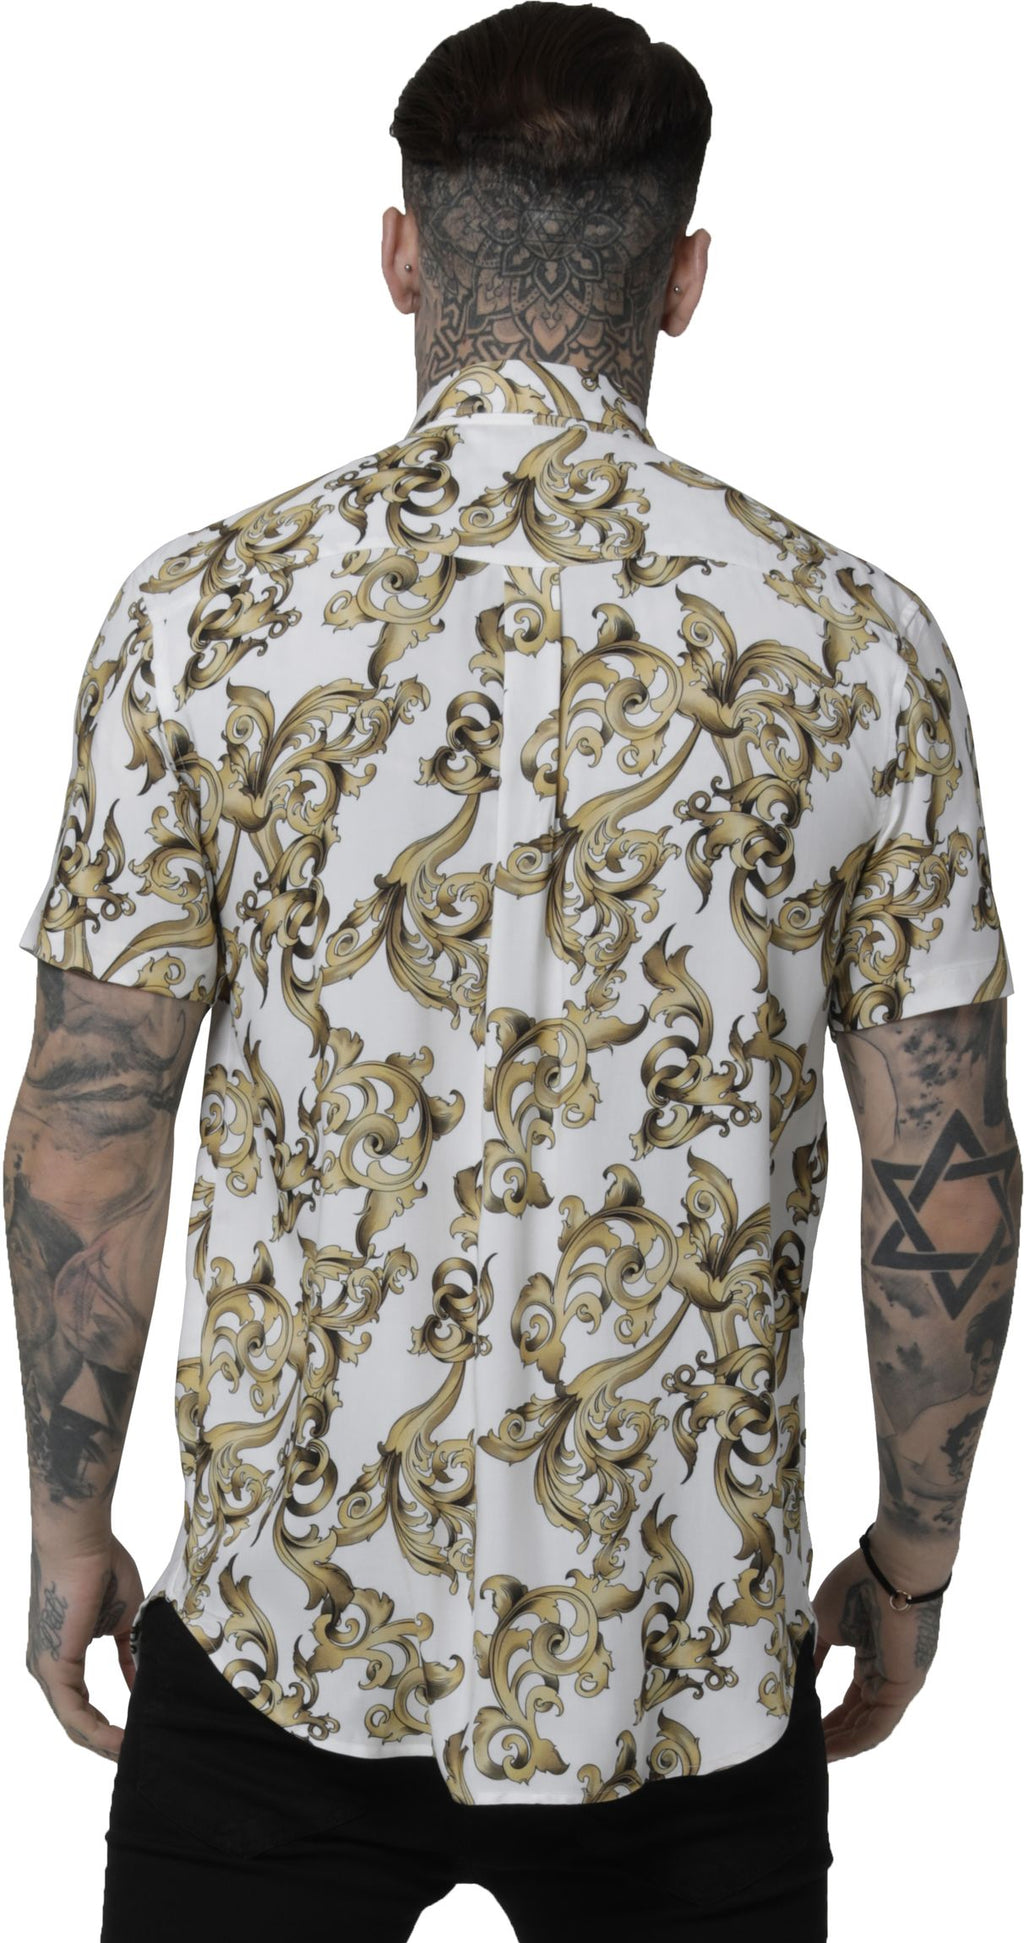 Sik Silk Resort Short Sleeve Shirt White